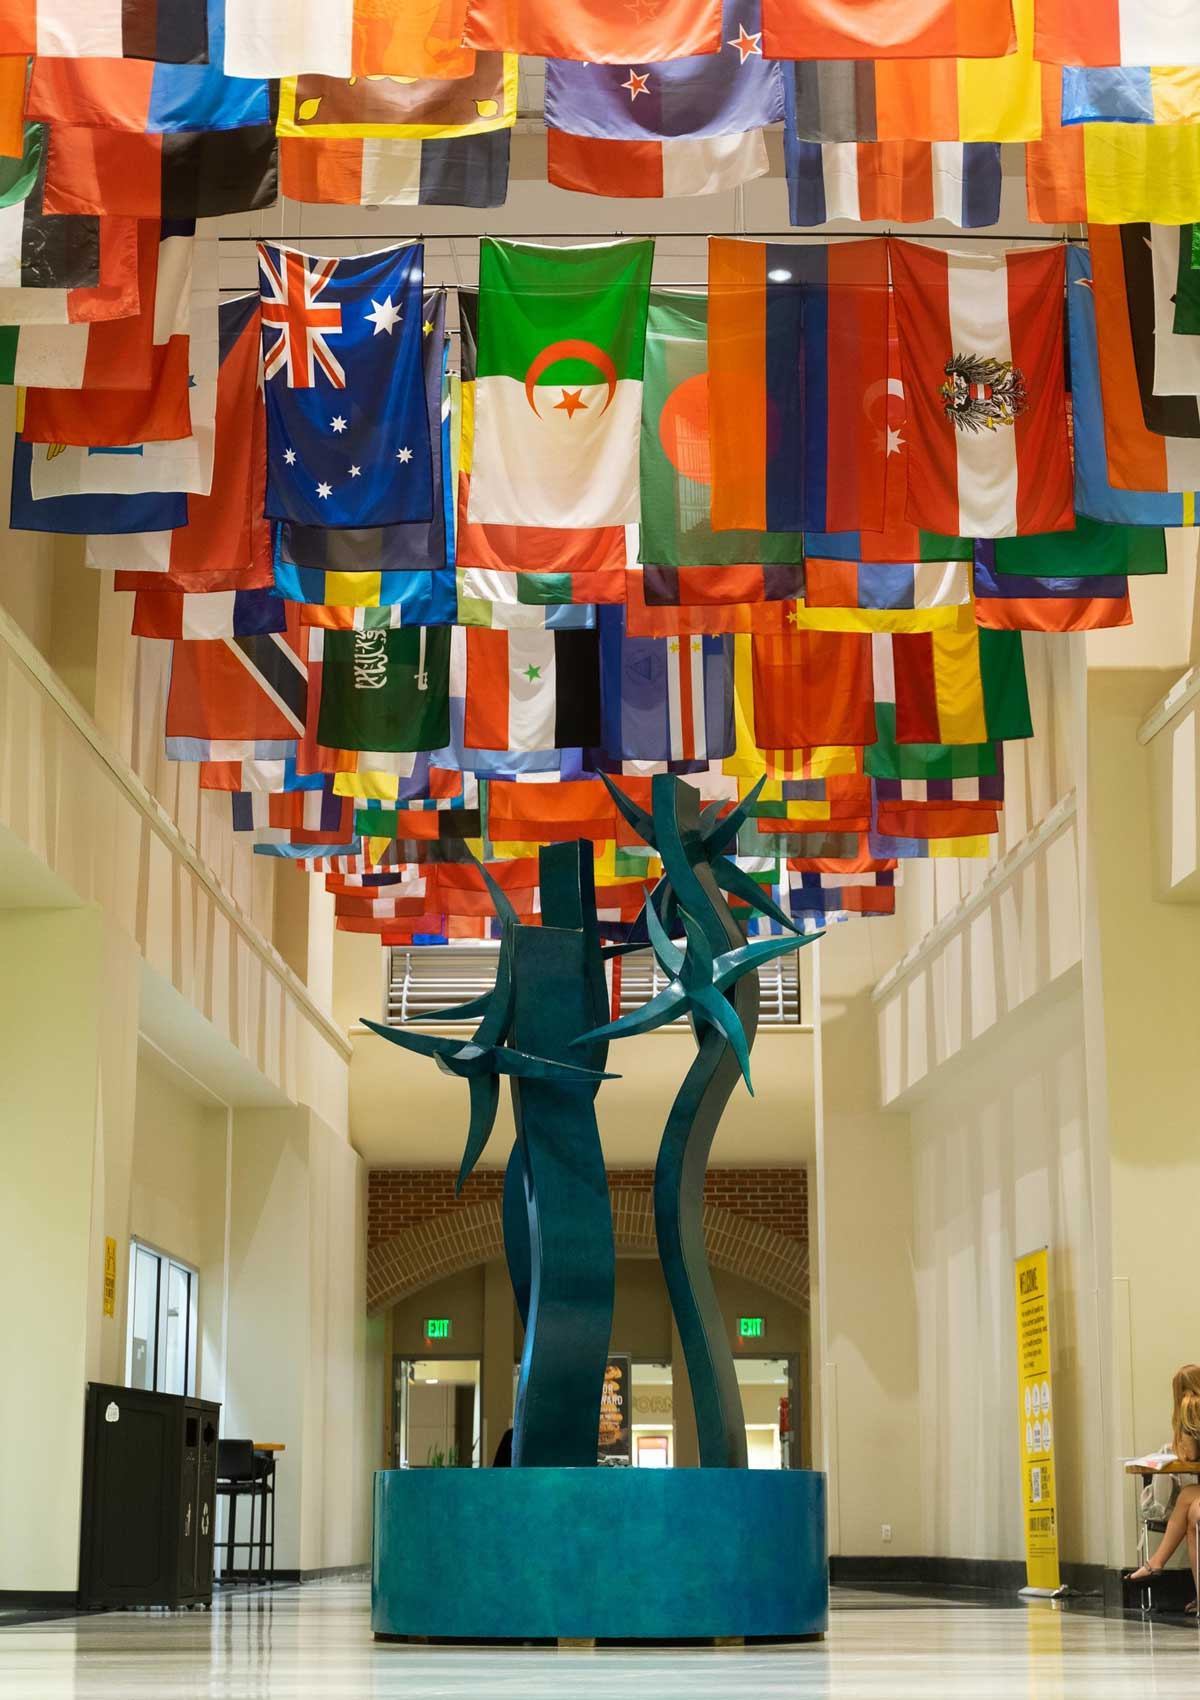 International flags in hallway of student union